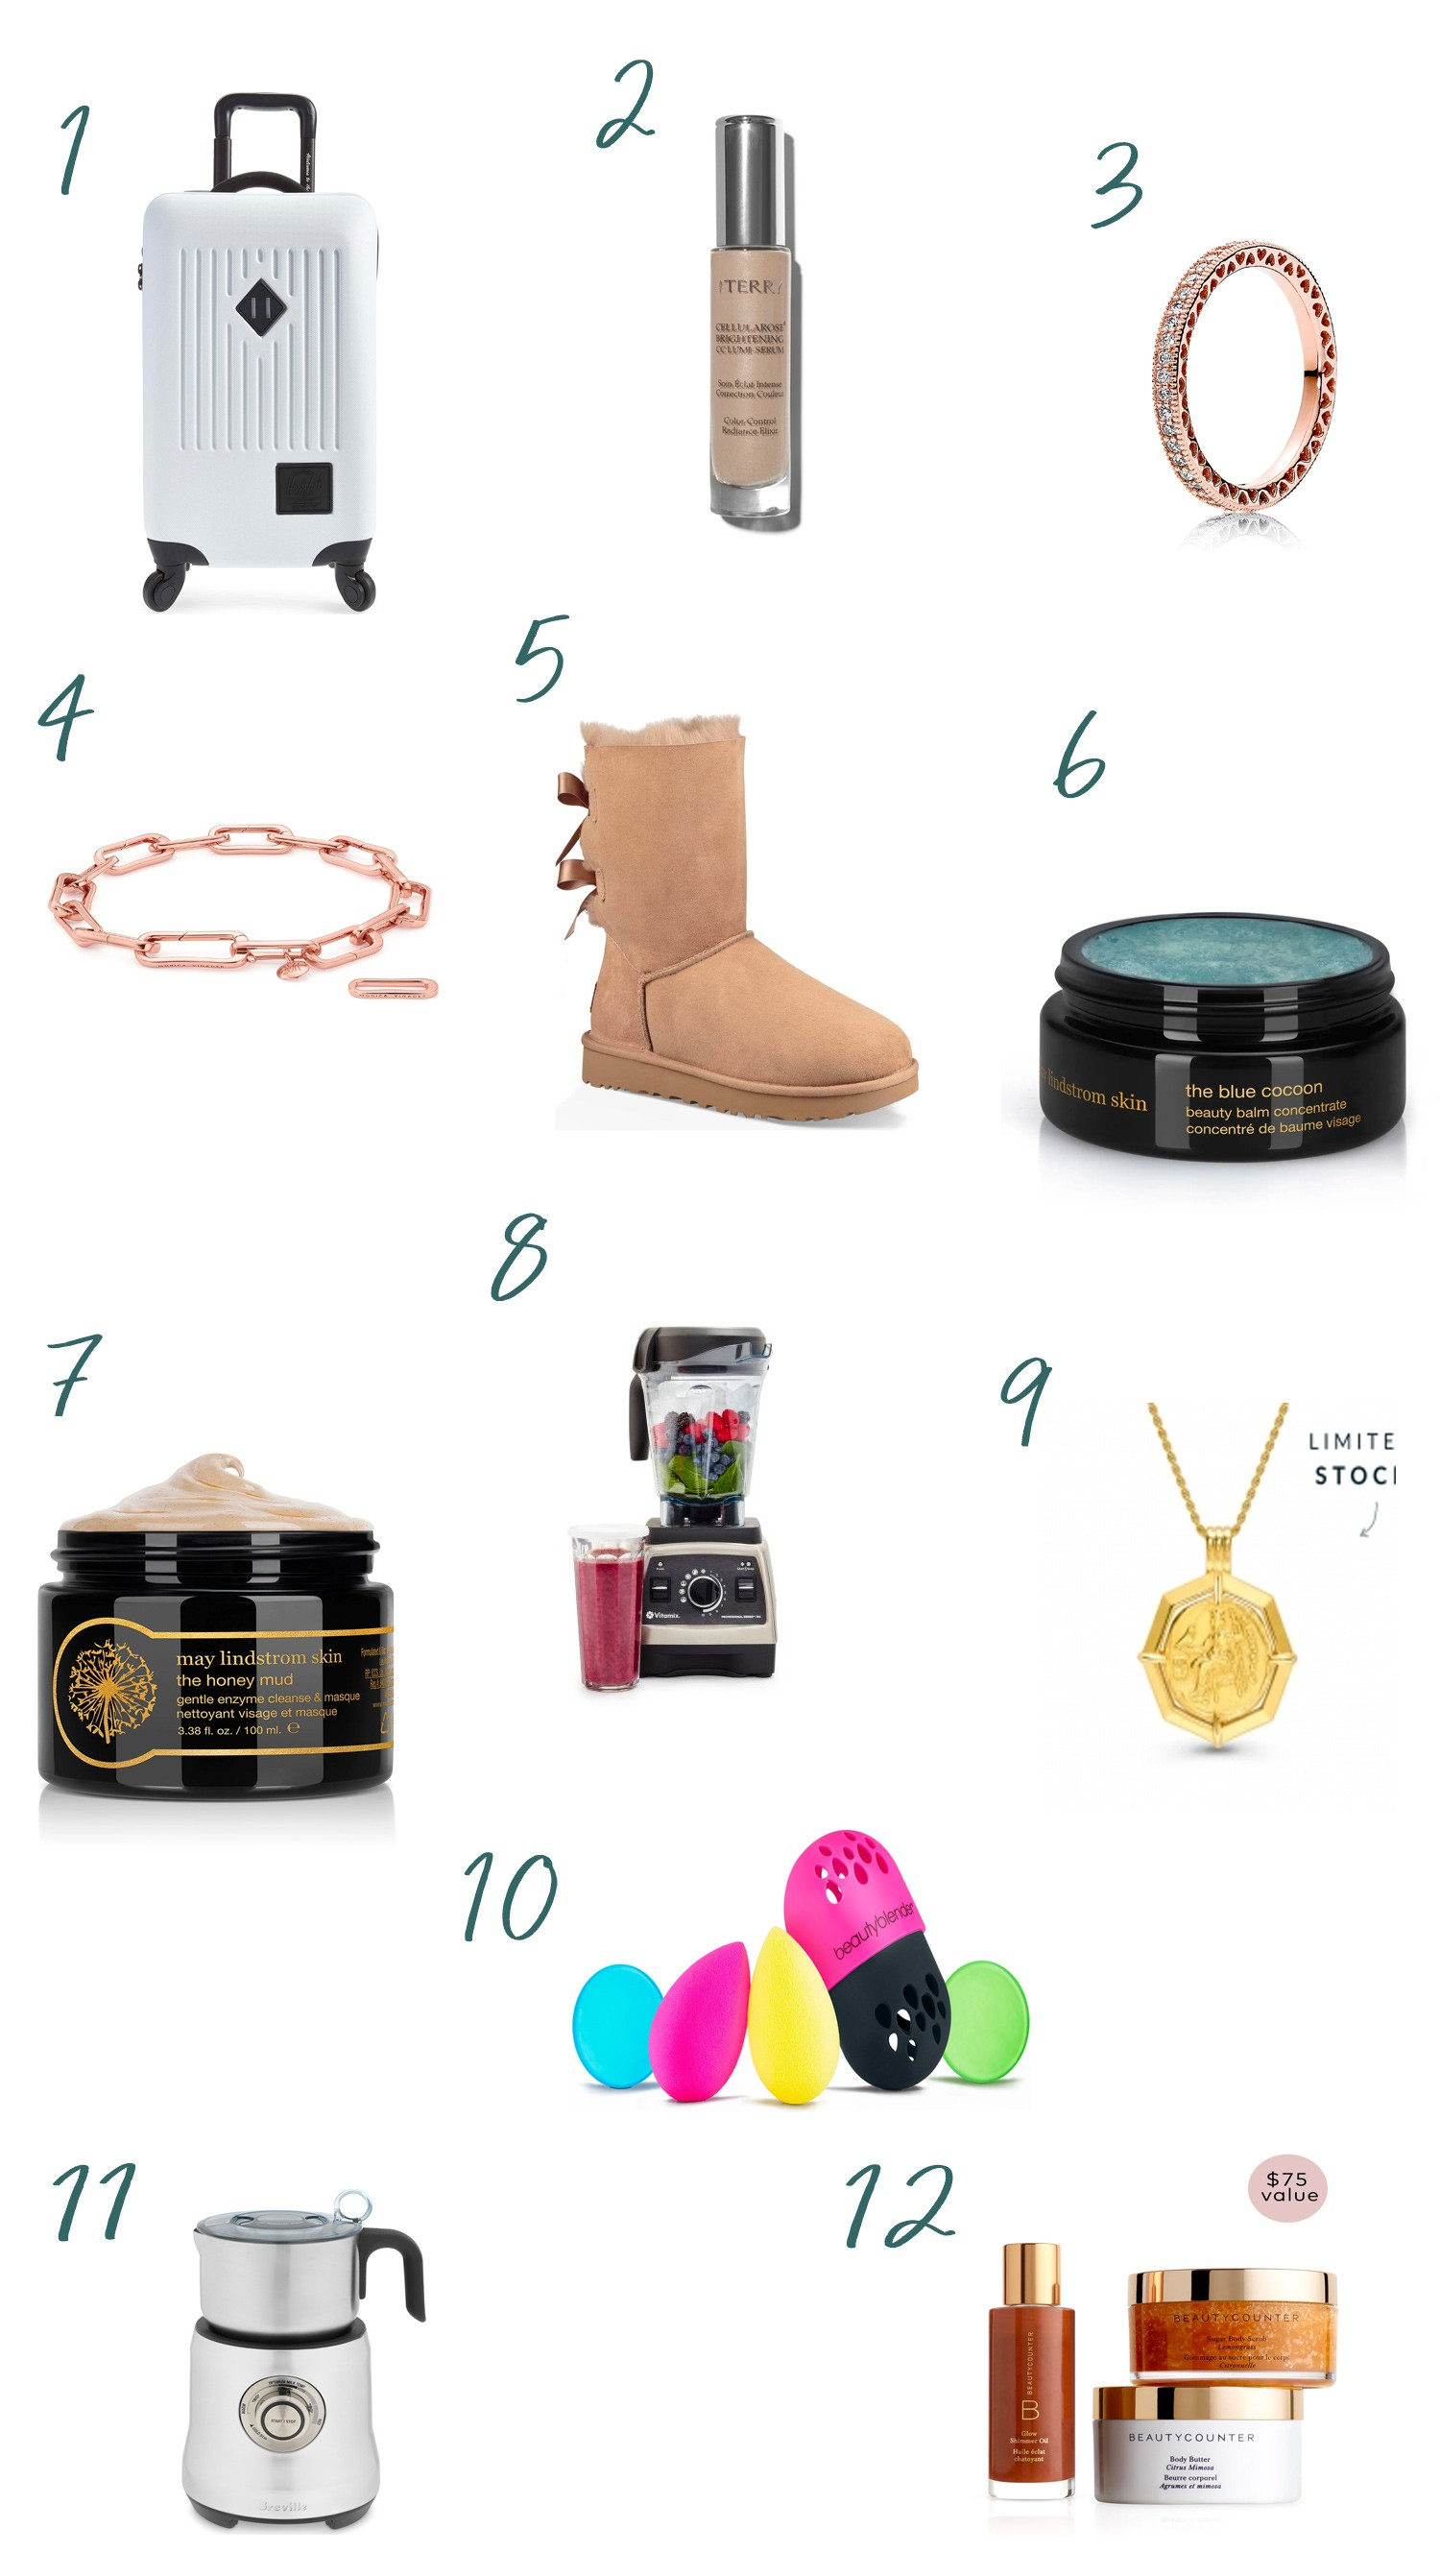 Stuff To Ask For For Christmas.Cool Things To Ask For Christmas 2018 Chrismastdays Co